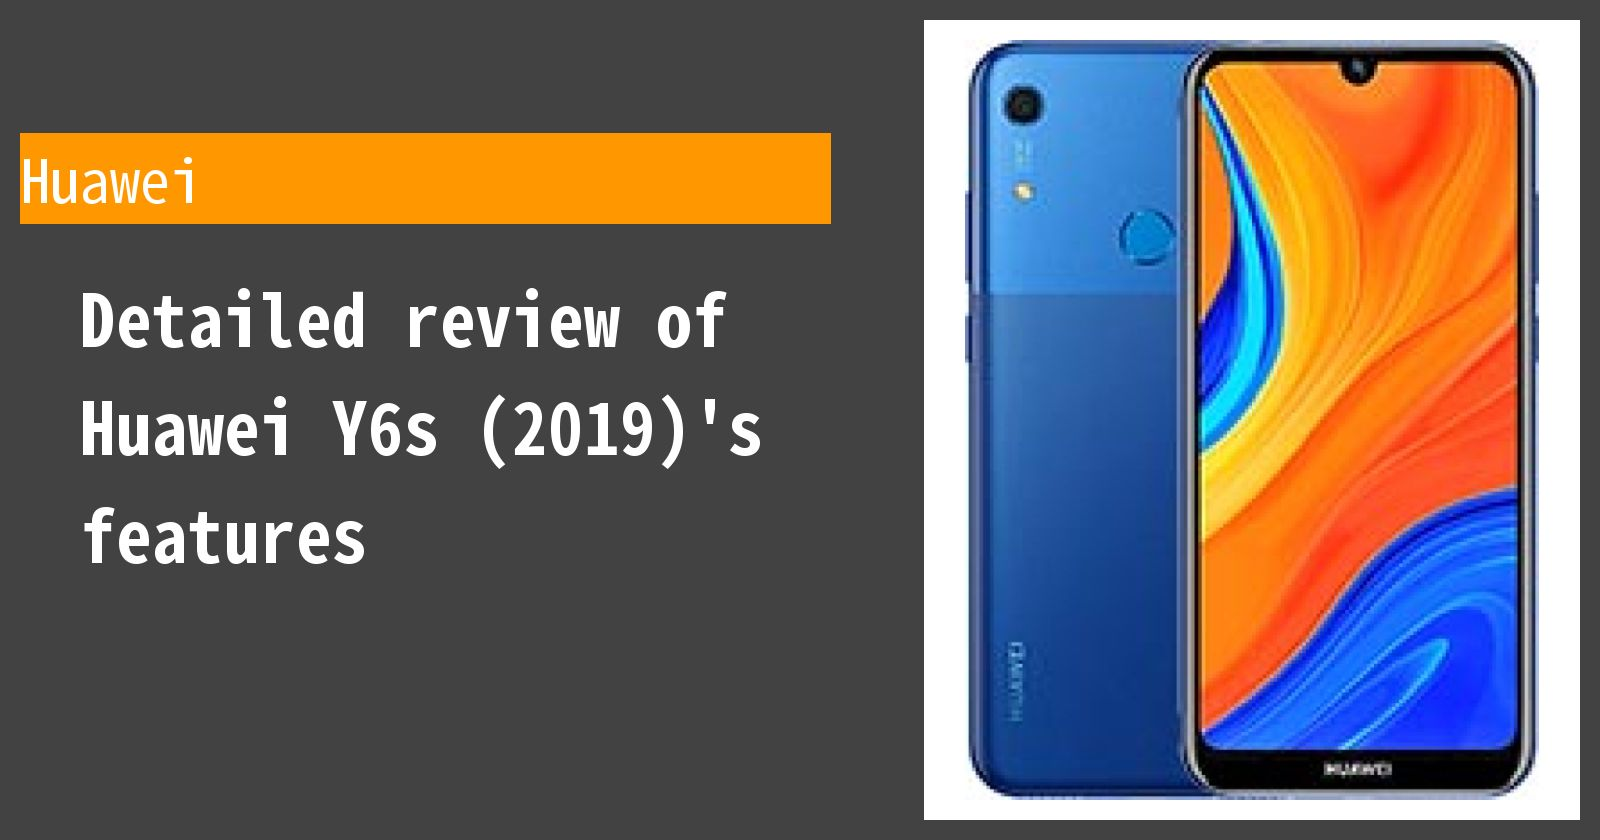 Detailed review of Huawei Y6s (2019)'s features